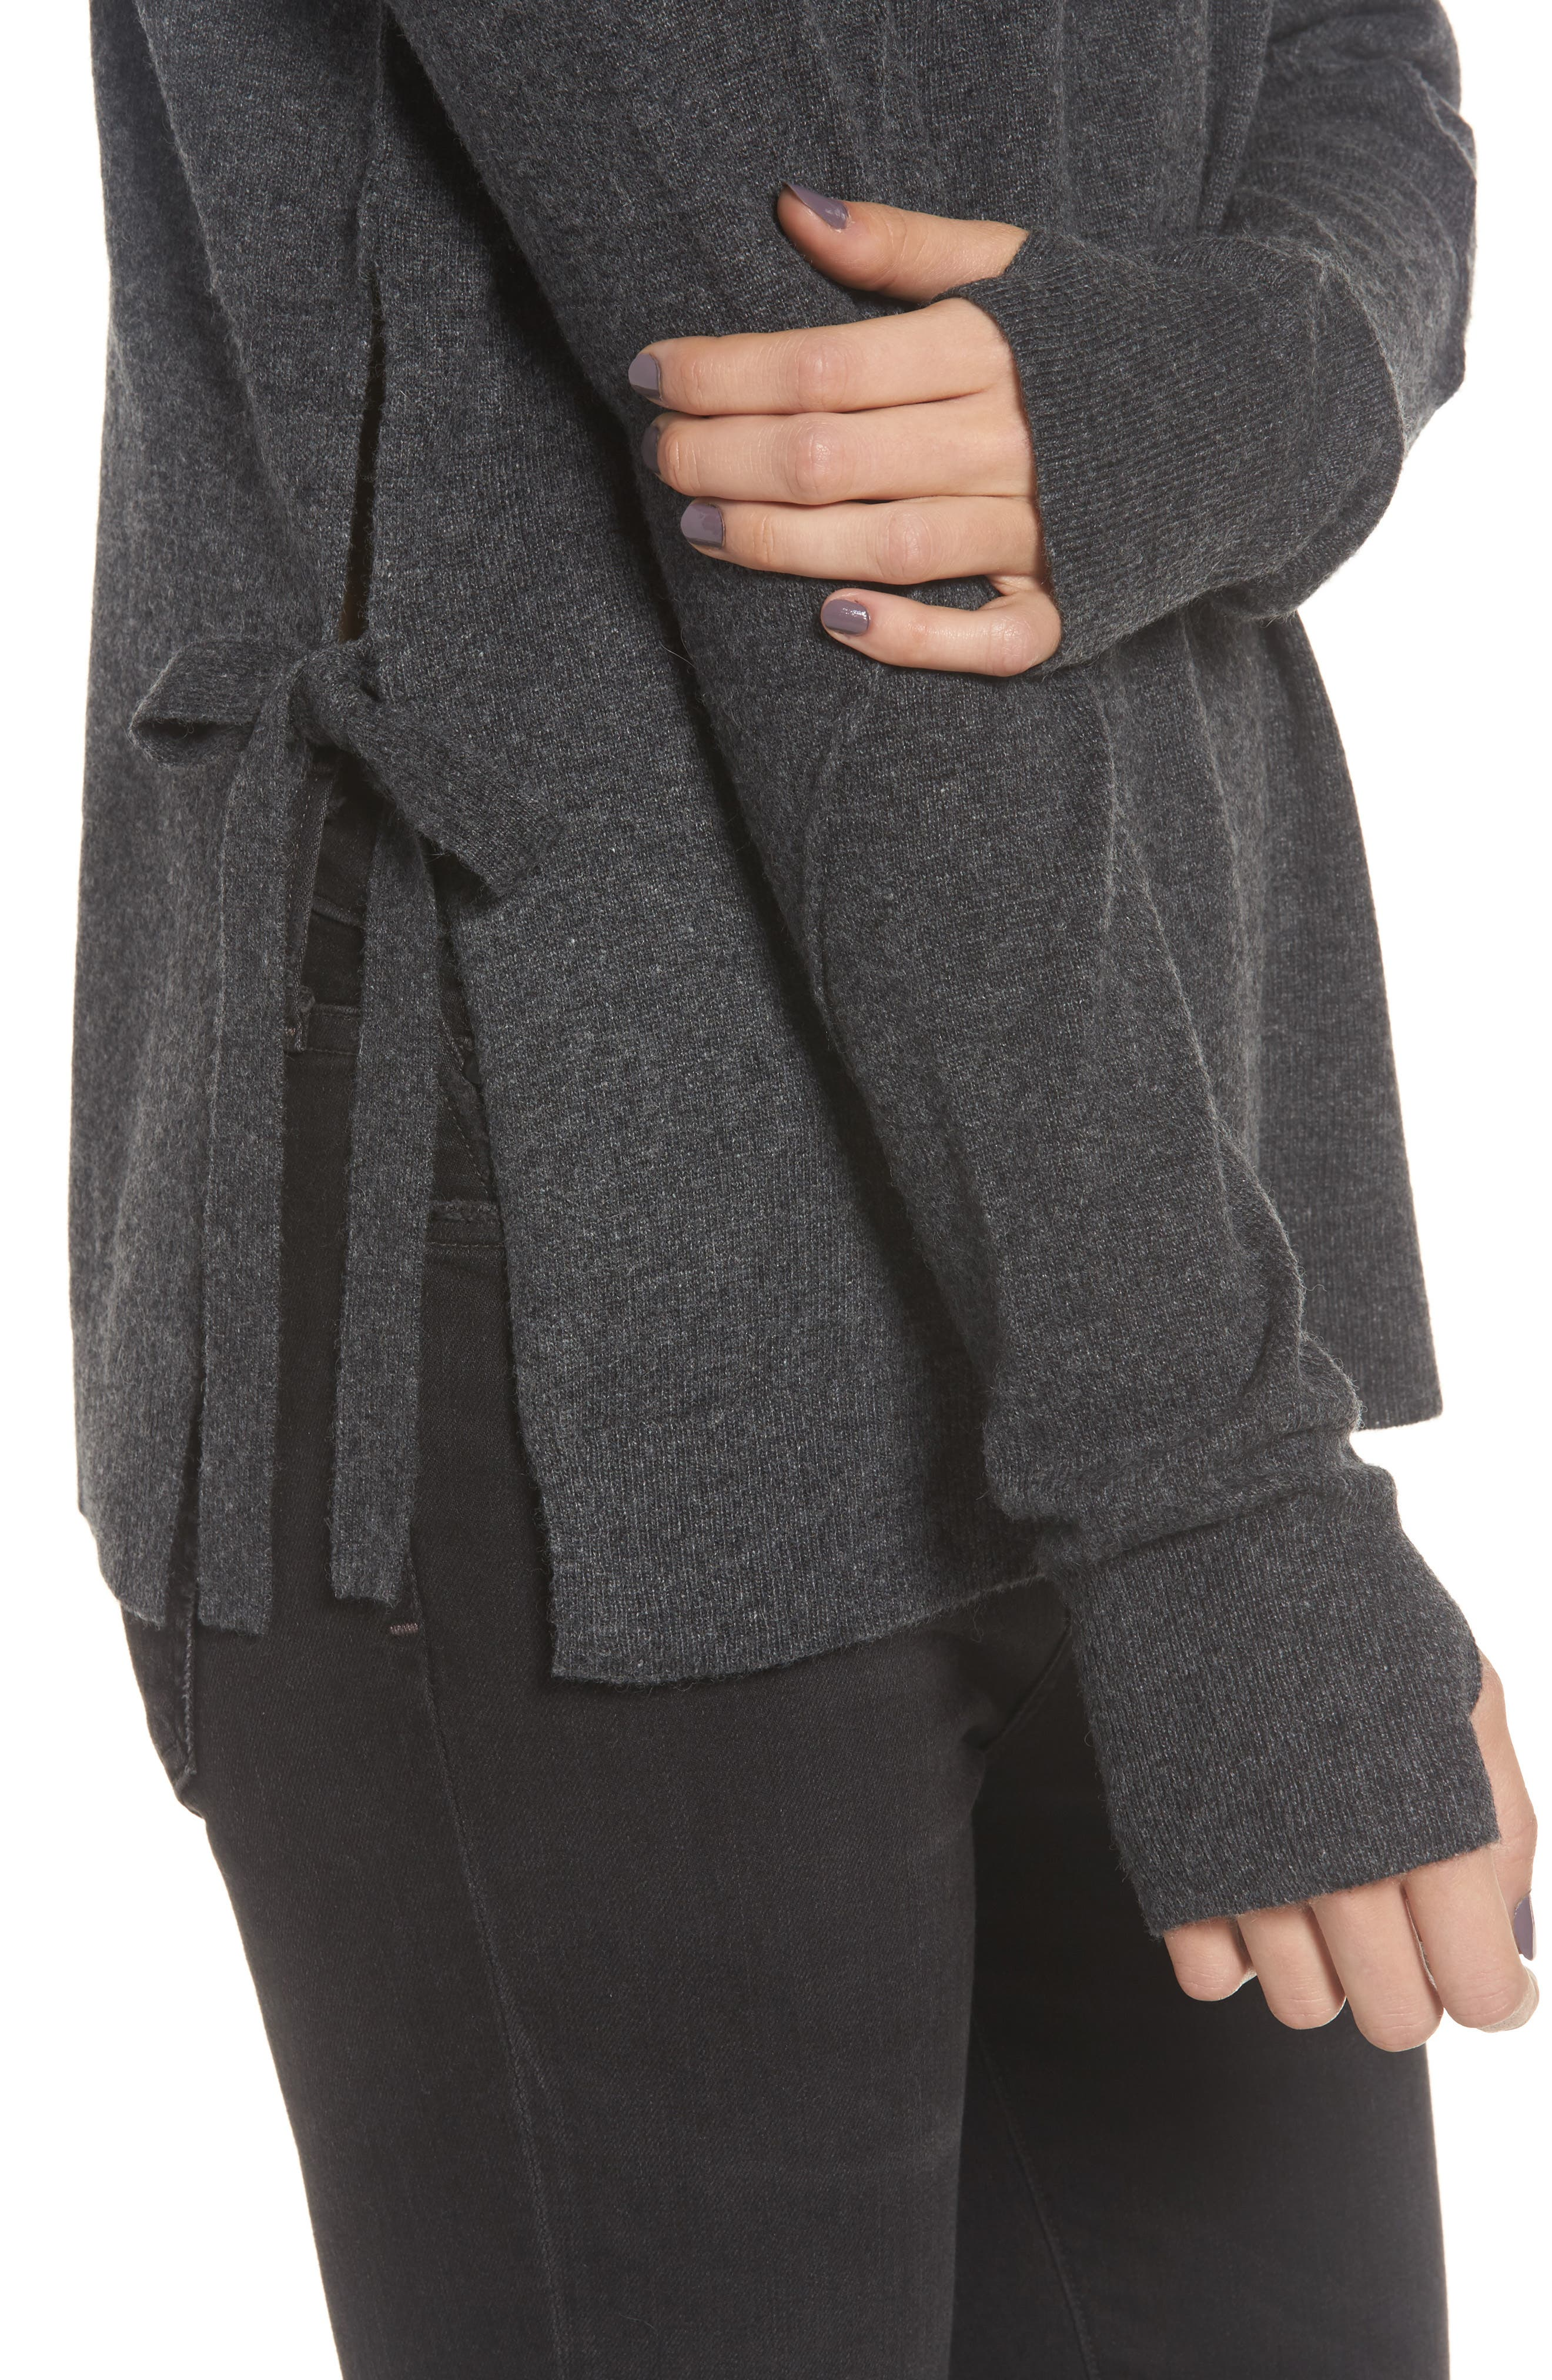 Dream Side Tie Sweater,                             Alternate thumbnail 4, color,                             031